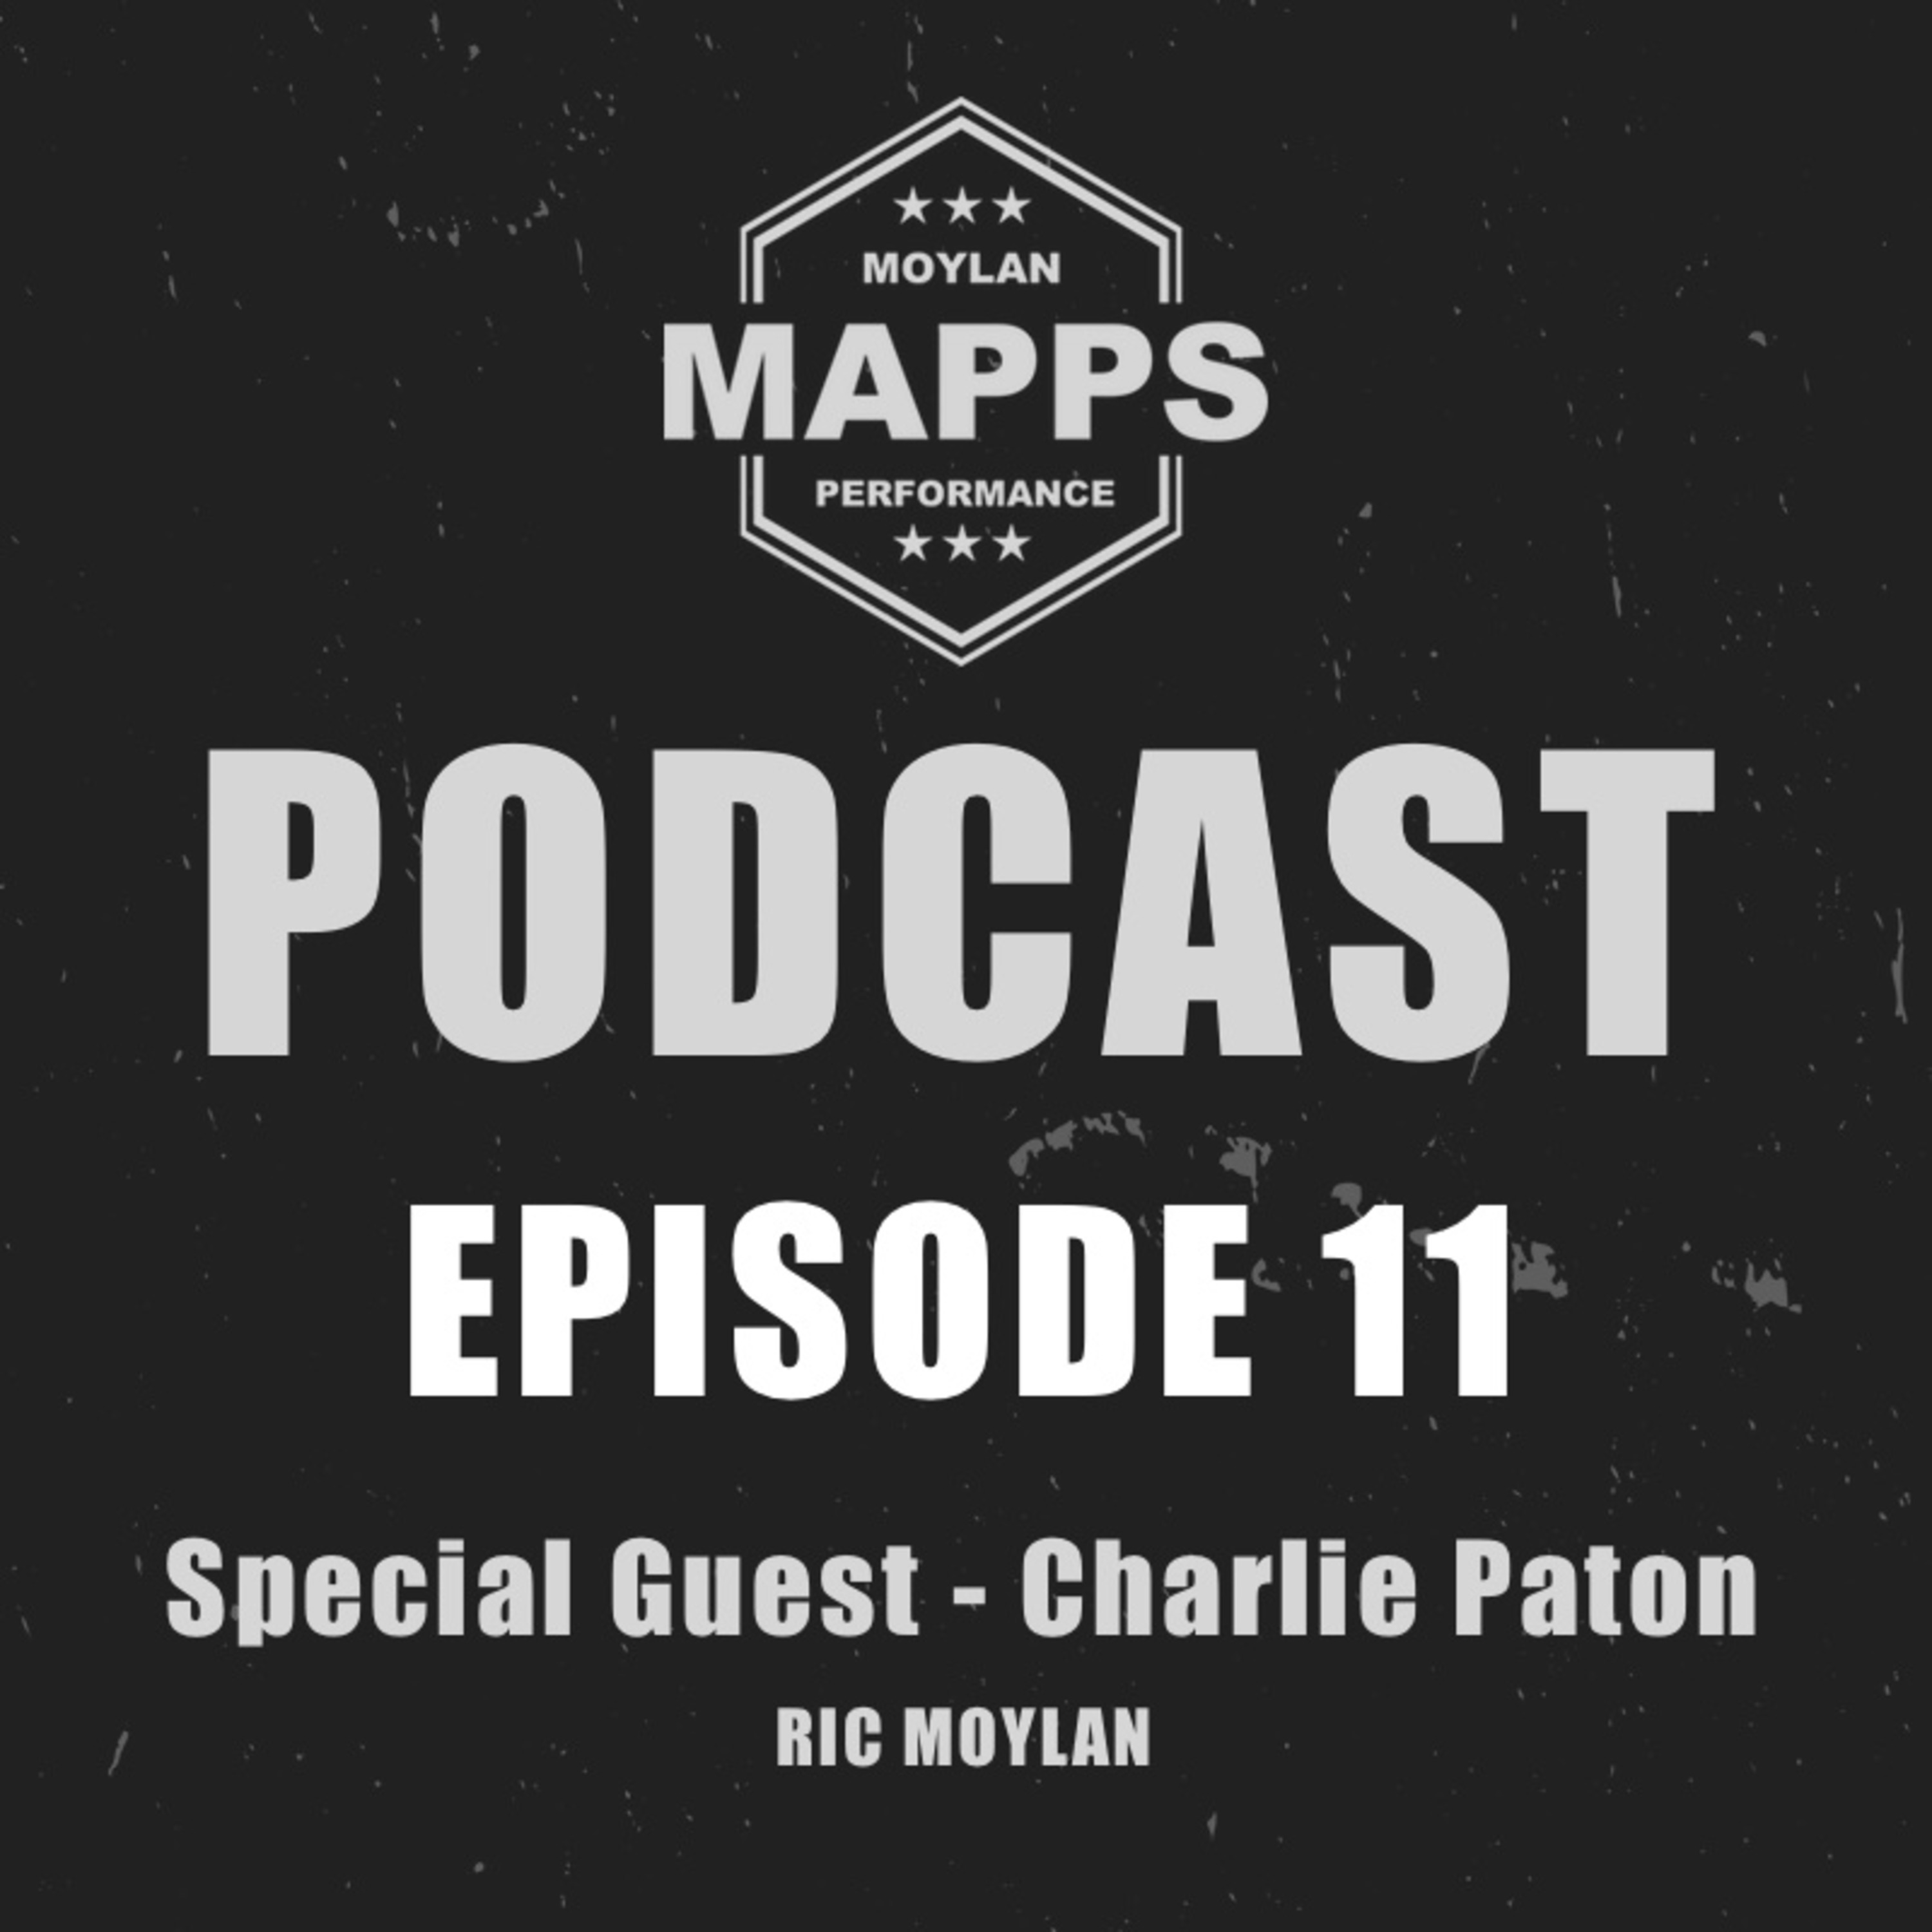 Episode 11 - Special Guest - Charlie Paton